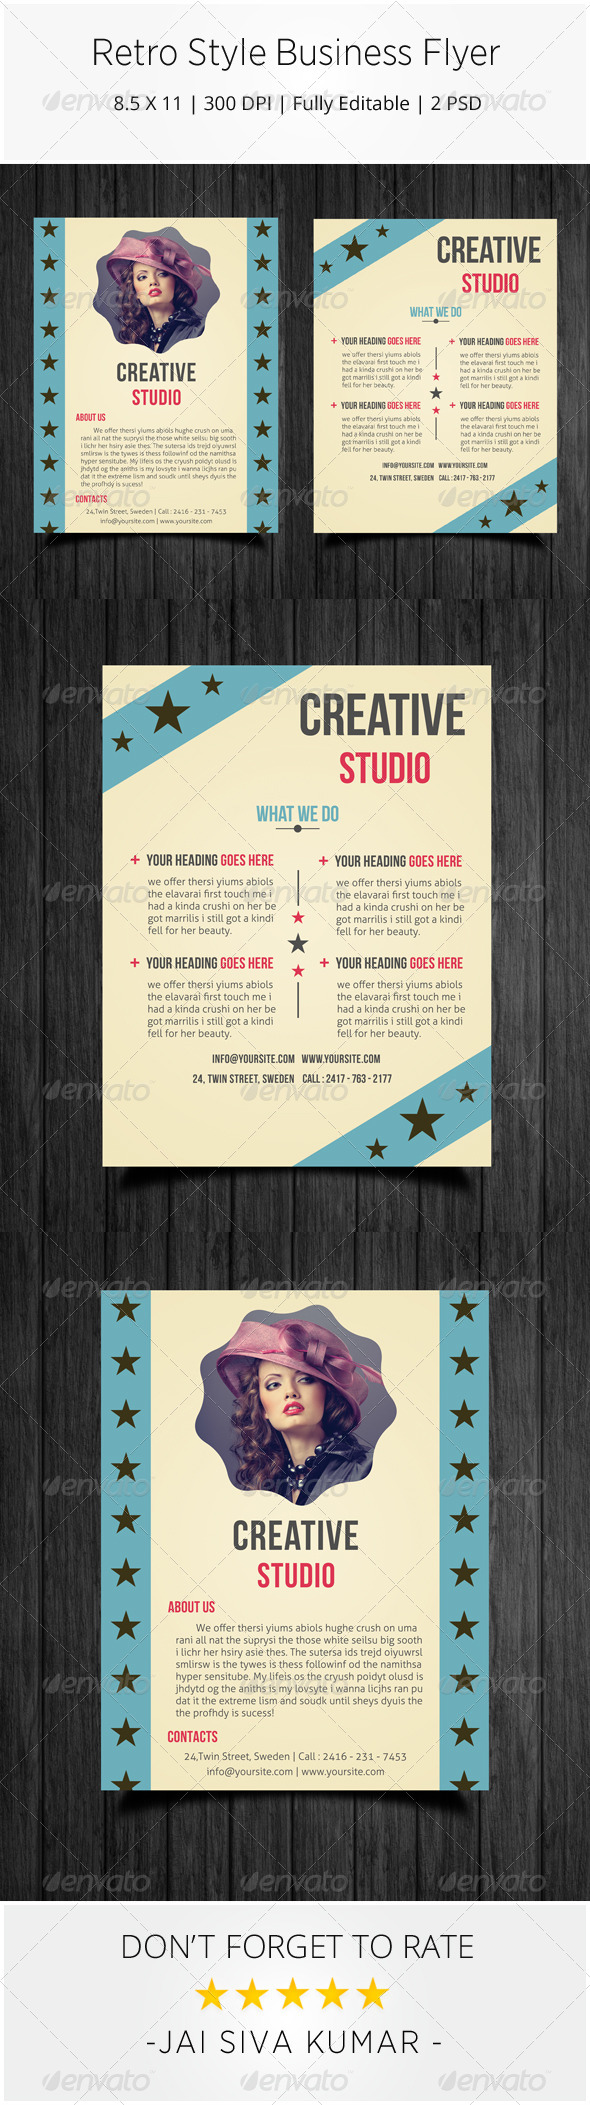 Retro Style Business Flyer - Corporate Flyers